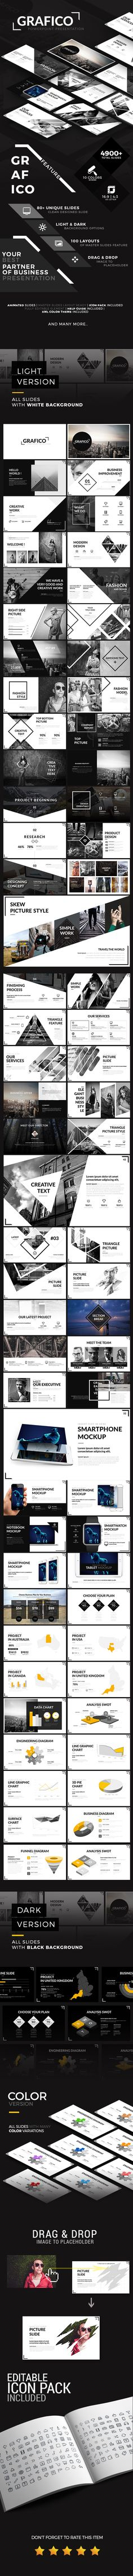 Source powerpoint presentation template powerpoint presentation source powerpoint presentation template powerpoint presentation templates presentation templates and professional powerpoint presentation alramifo Gallery